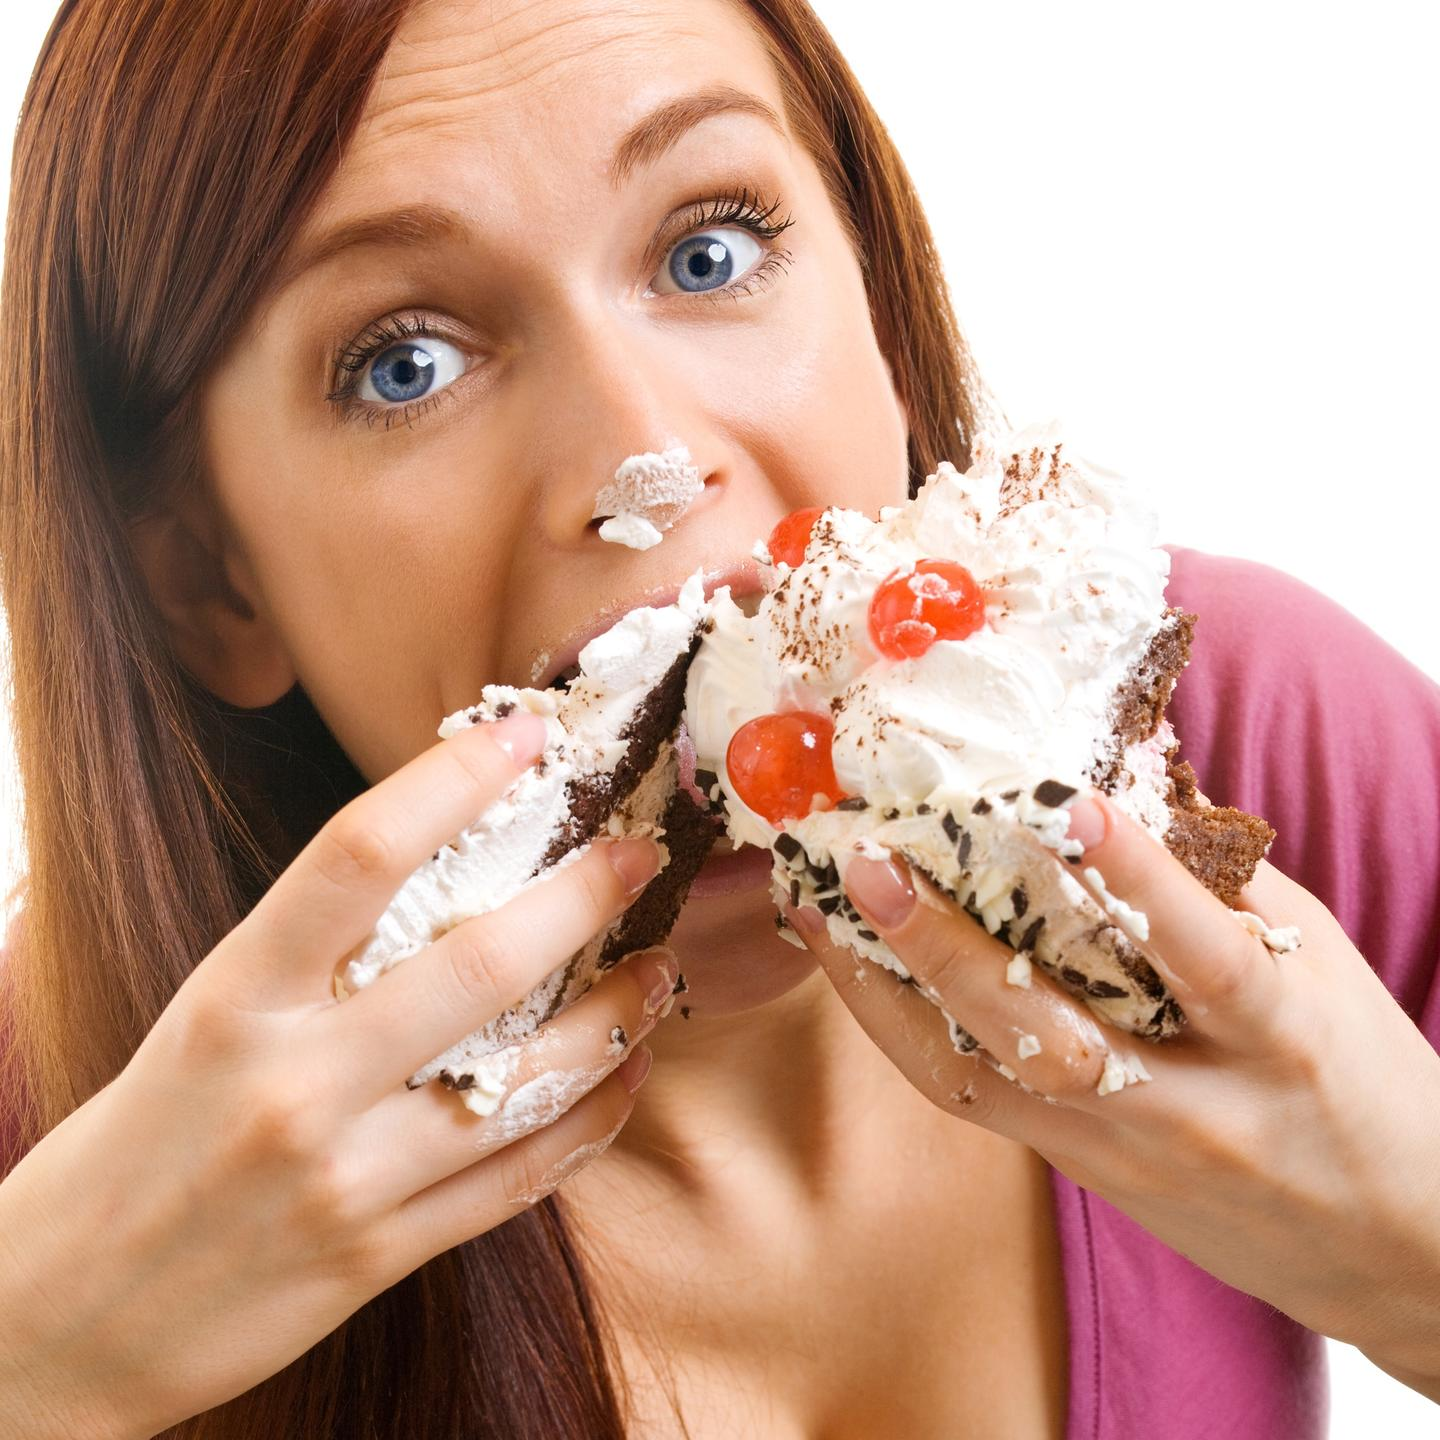 Woman stuffing cupcake in mouth